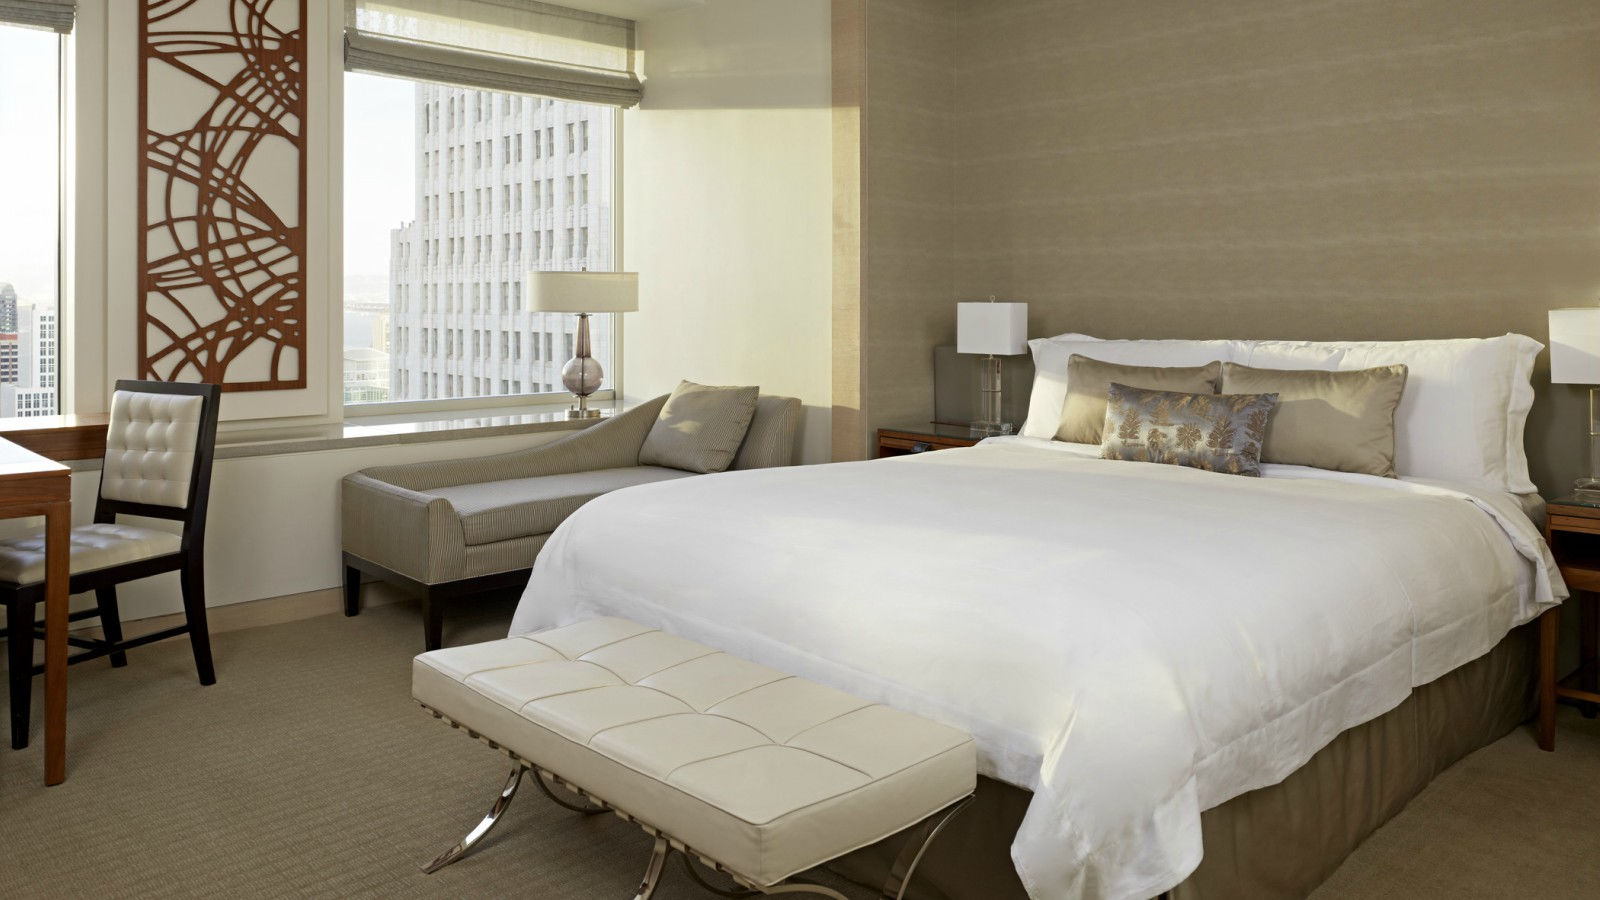 A photograph featuring a freshly laid double bed inside a Deluxe Guest Room at 5 star hotel, St. Regis SF